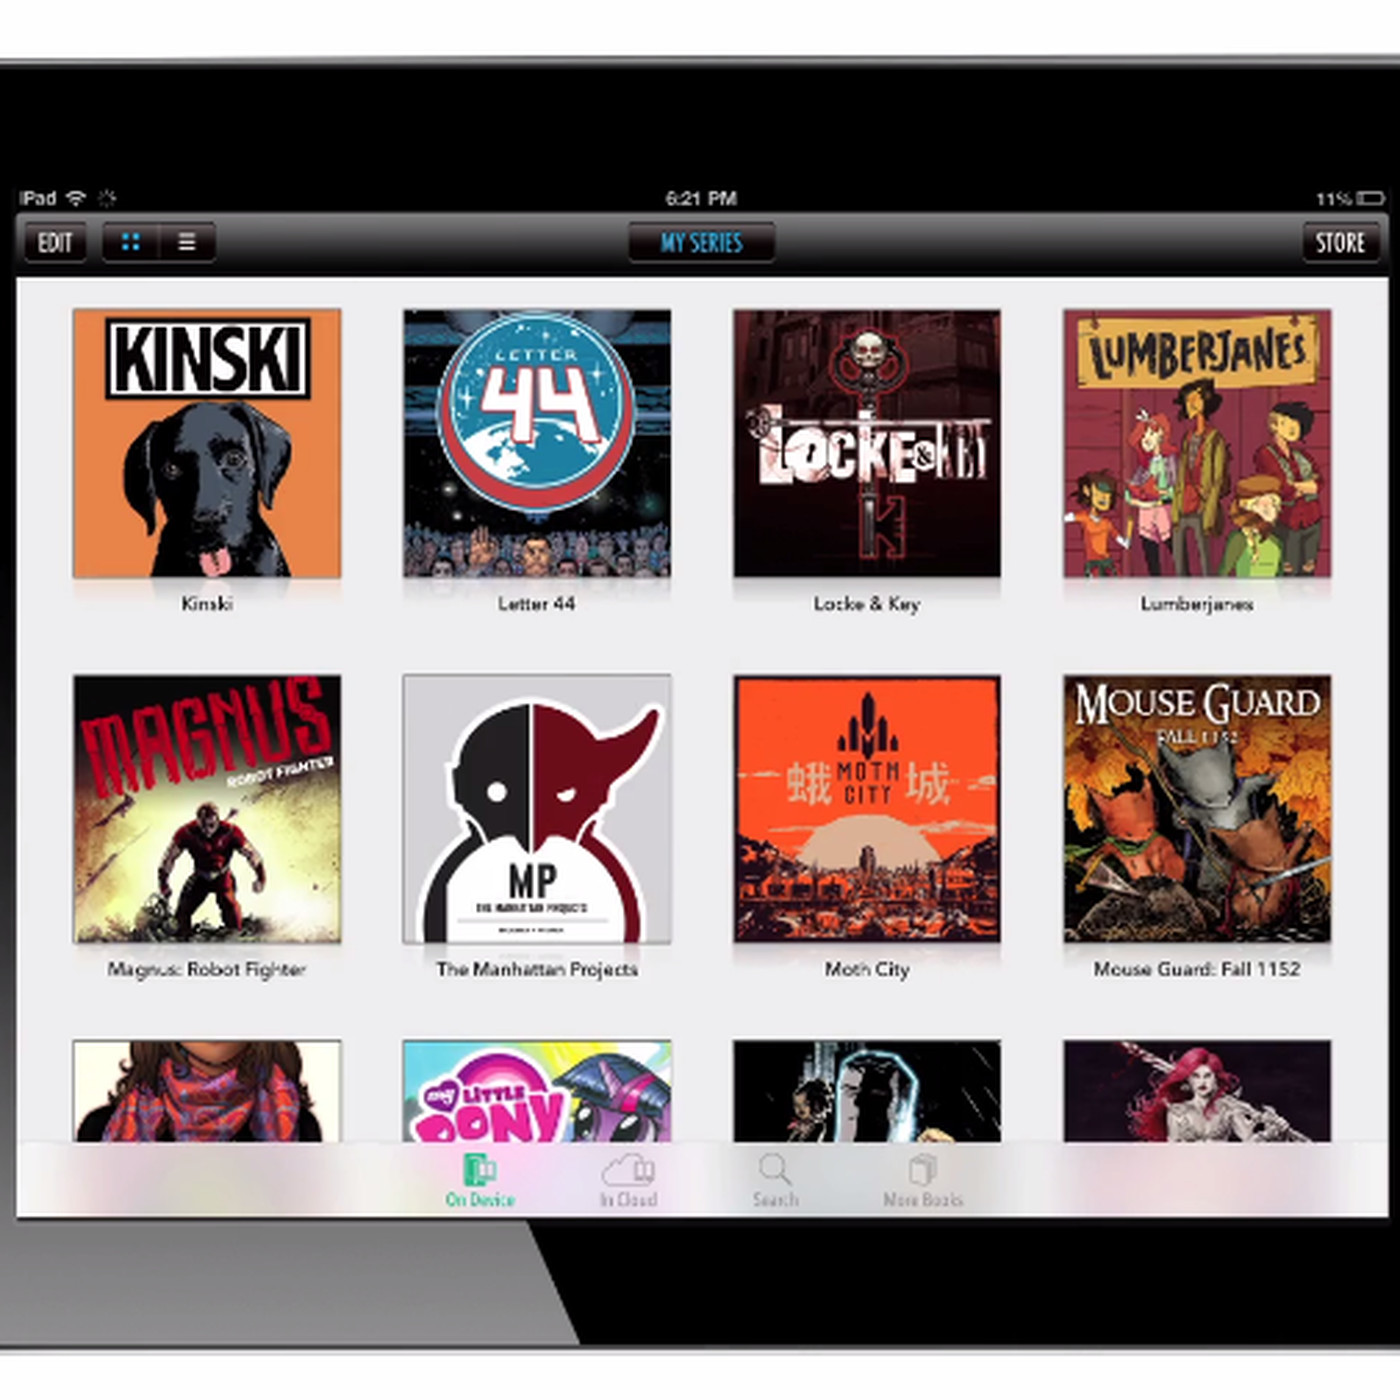 Comixology users can now download DRM-free backups of some comics